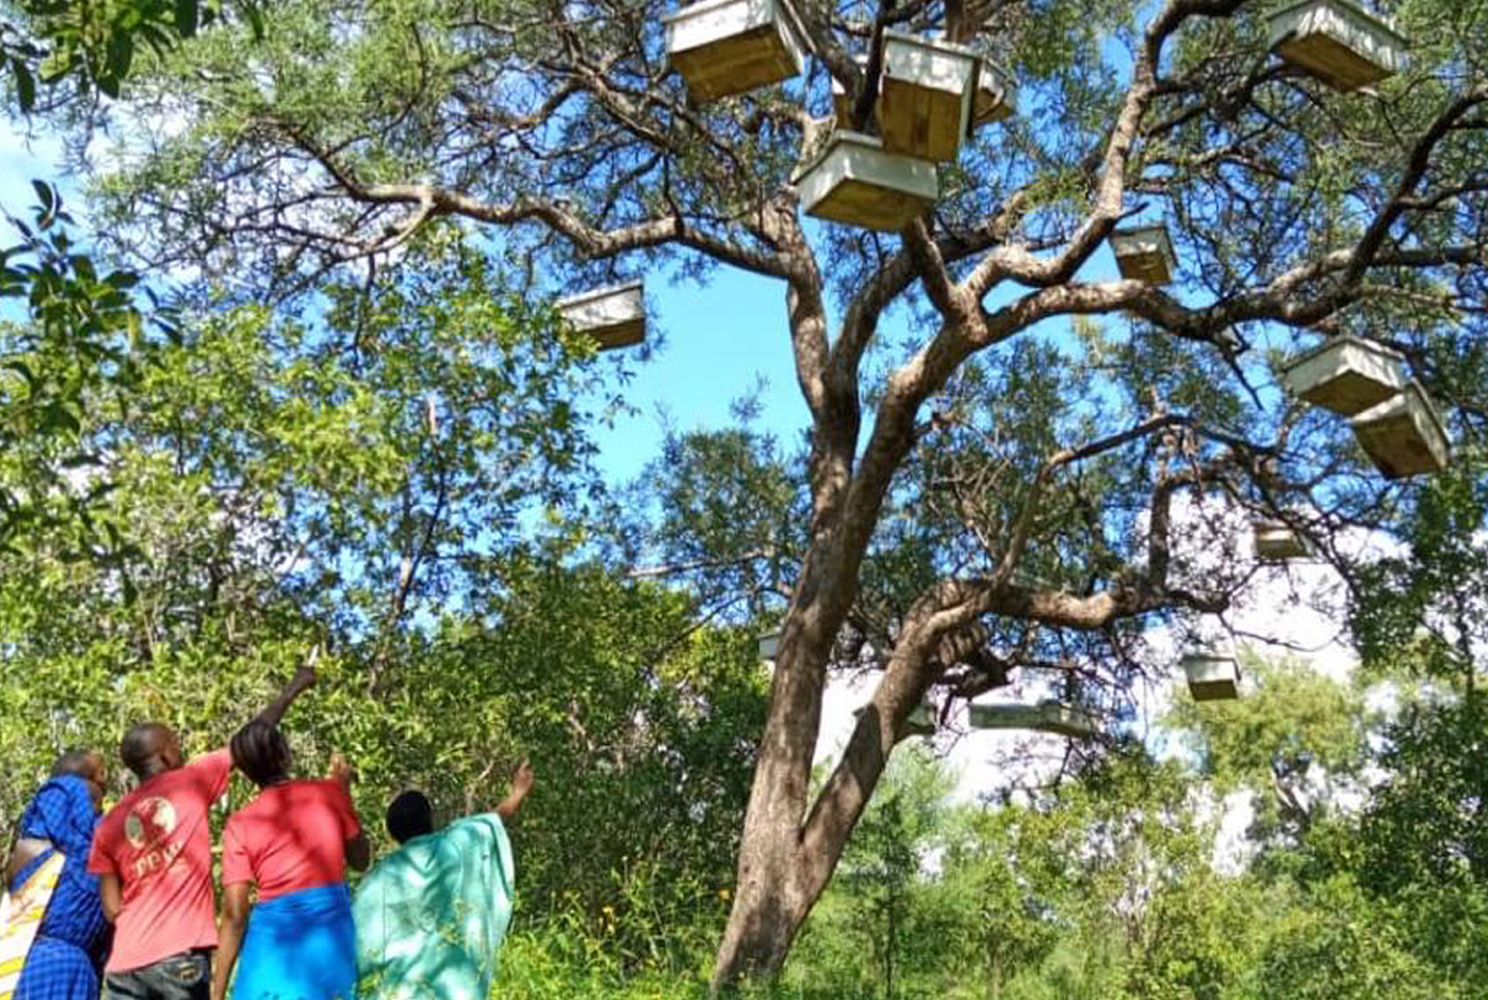 A group of people hanging beehives in a baobab tree